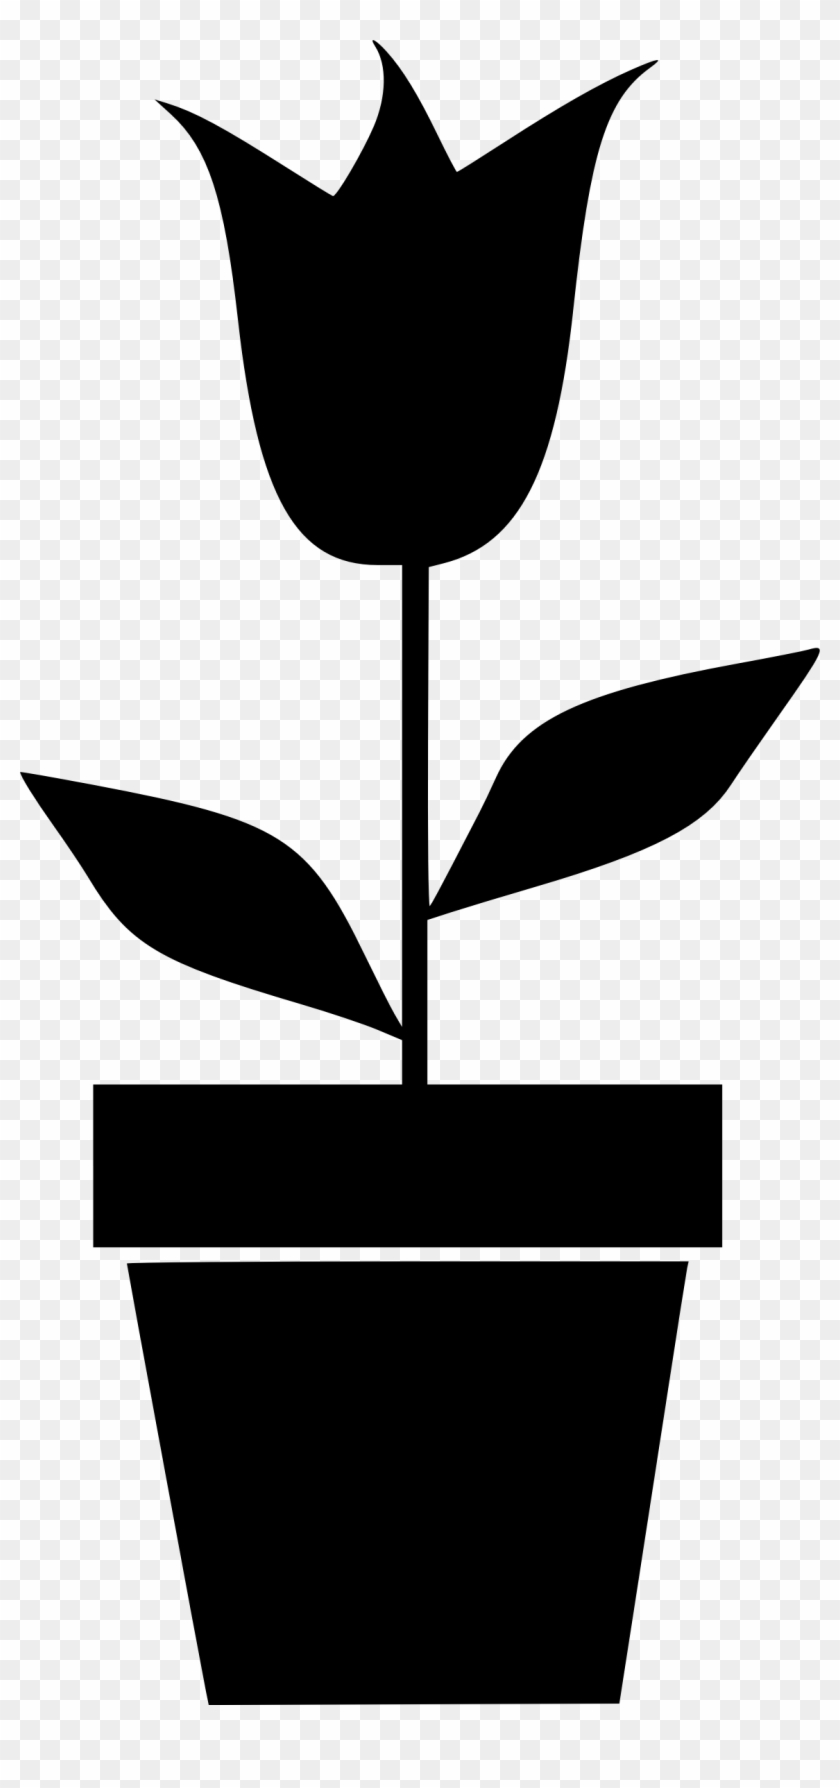 This Free Icons Png Design Of Potted Plant 5 - Flower Pots Clipart Black White Transparent Png #5136212